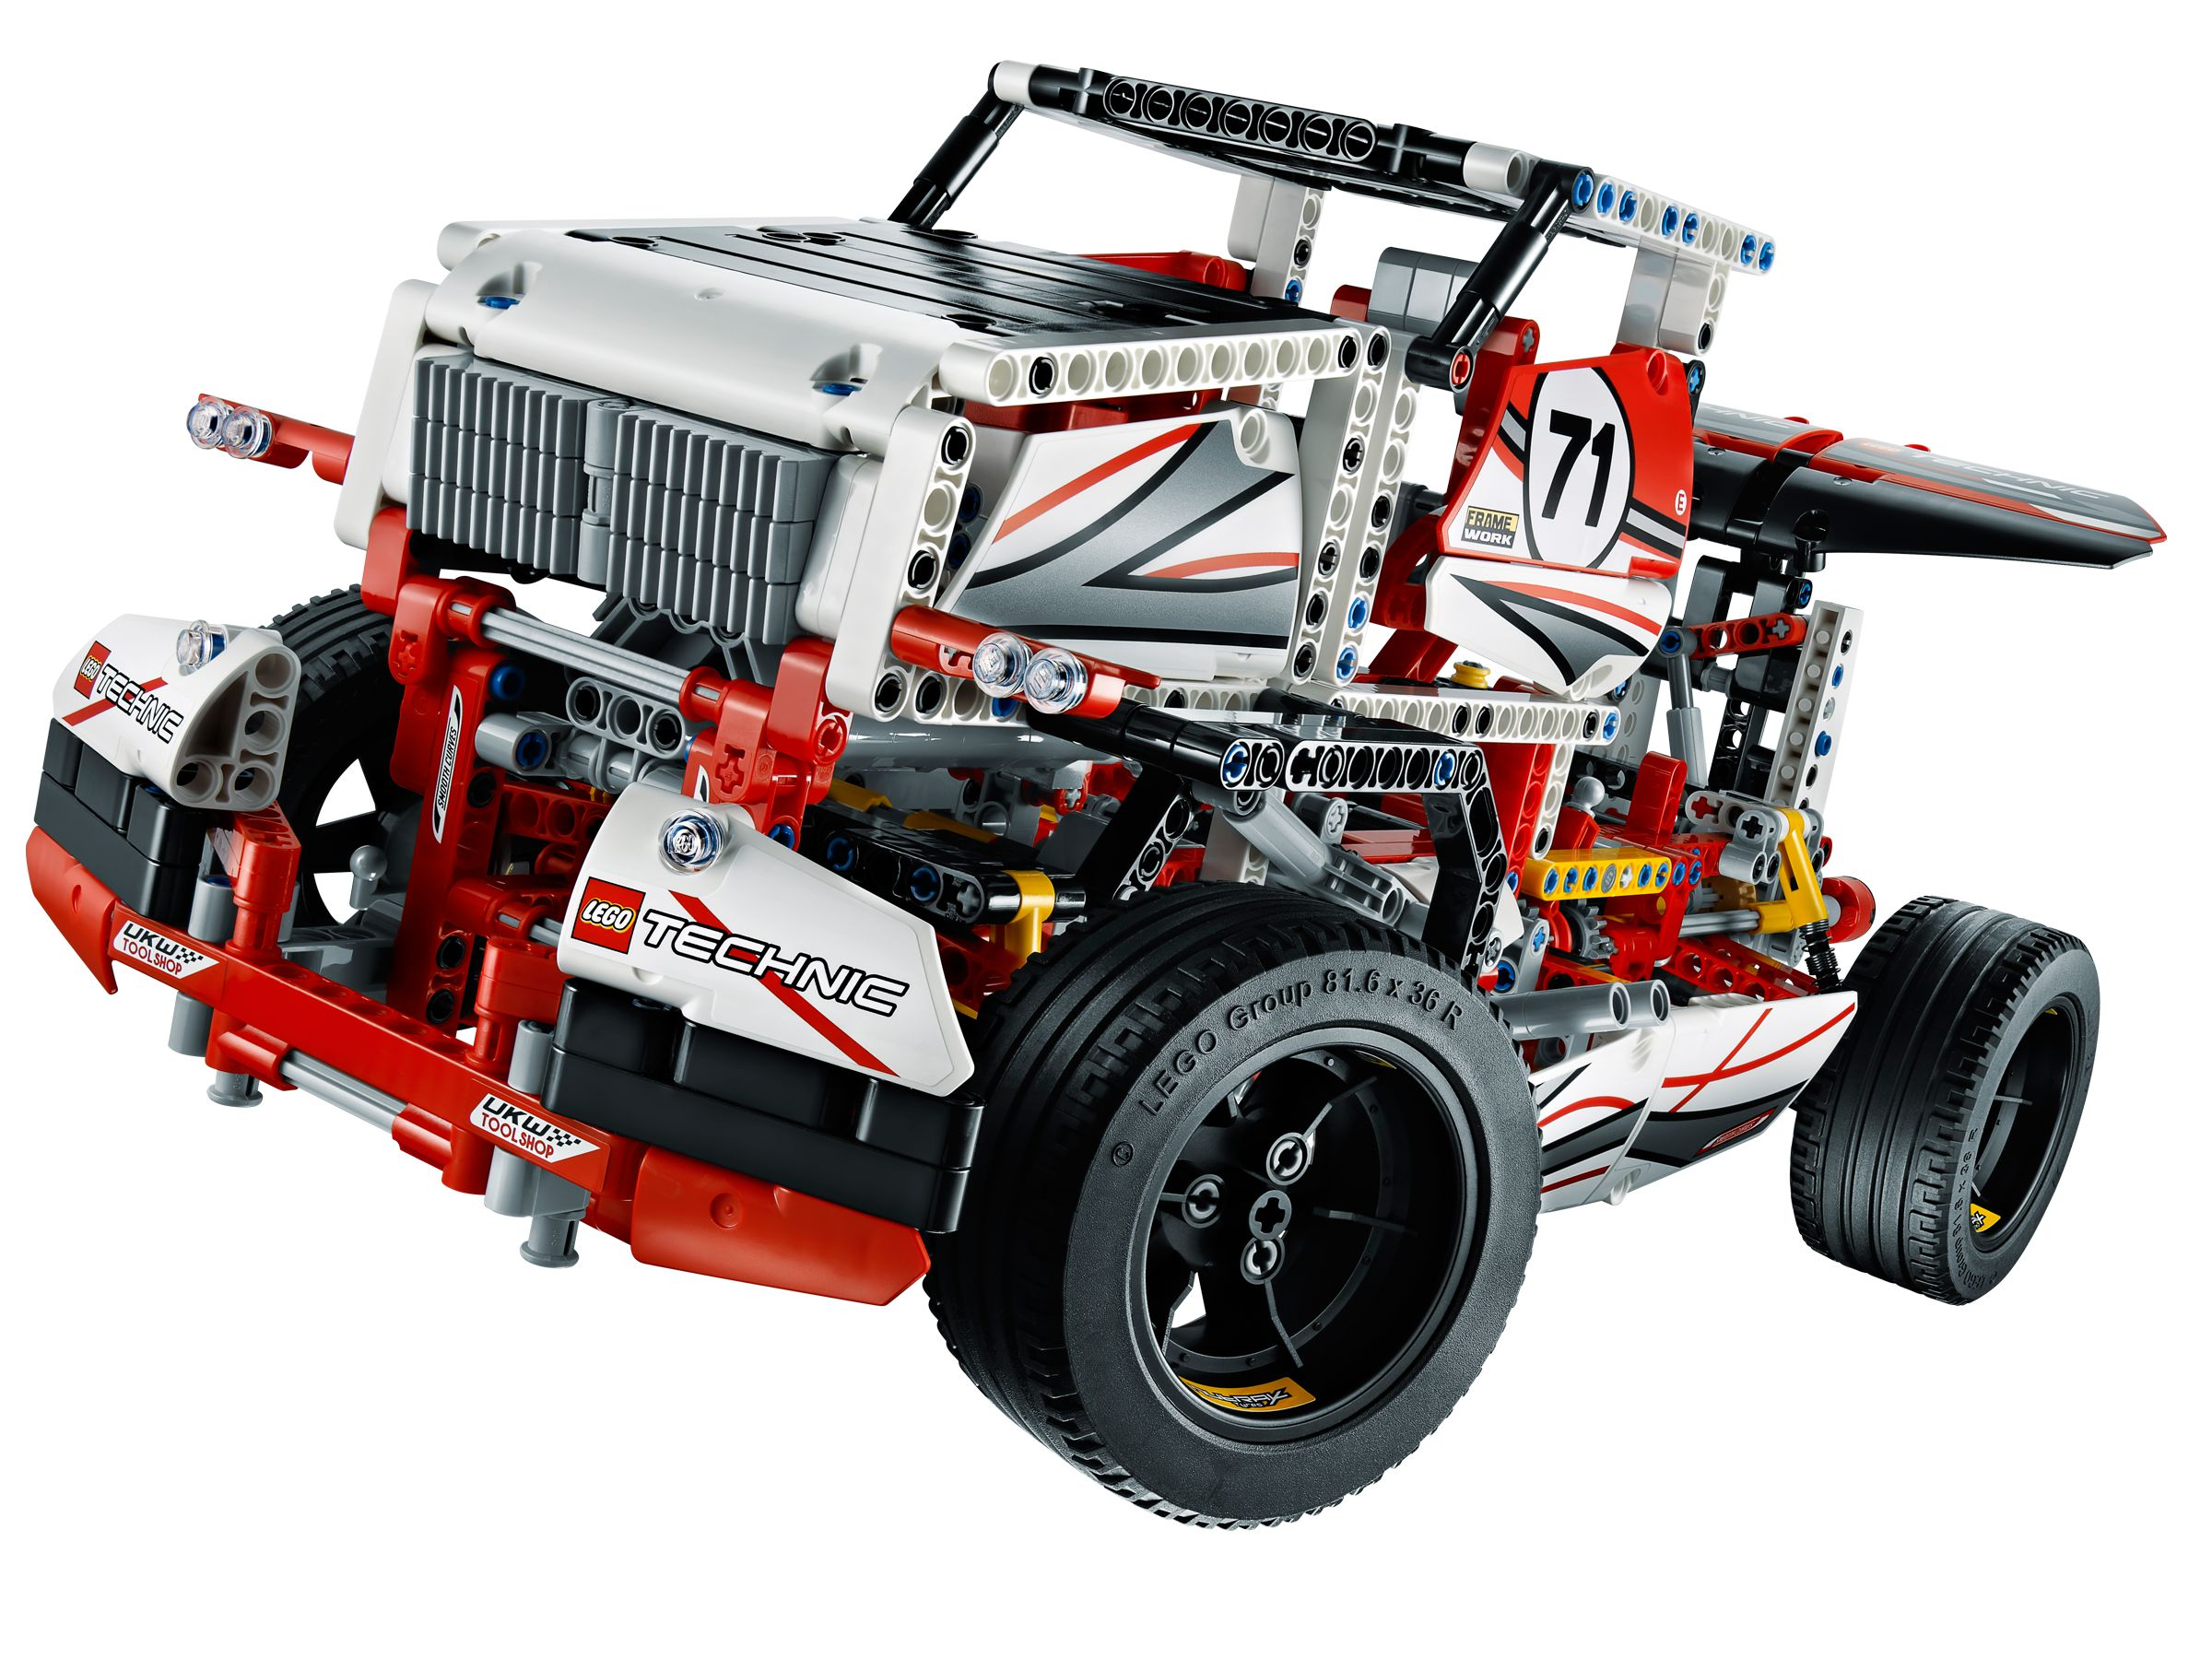 lego 42000 sportwagen technic 2013 grand prix racer. Black Bedroom Furniture Sets. Home Design Ideas